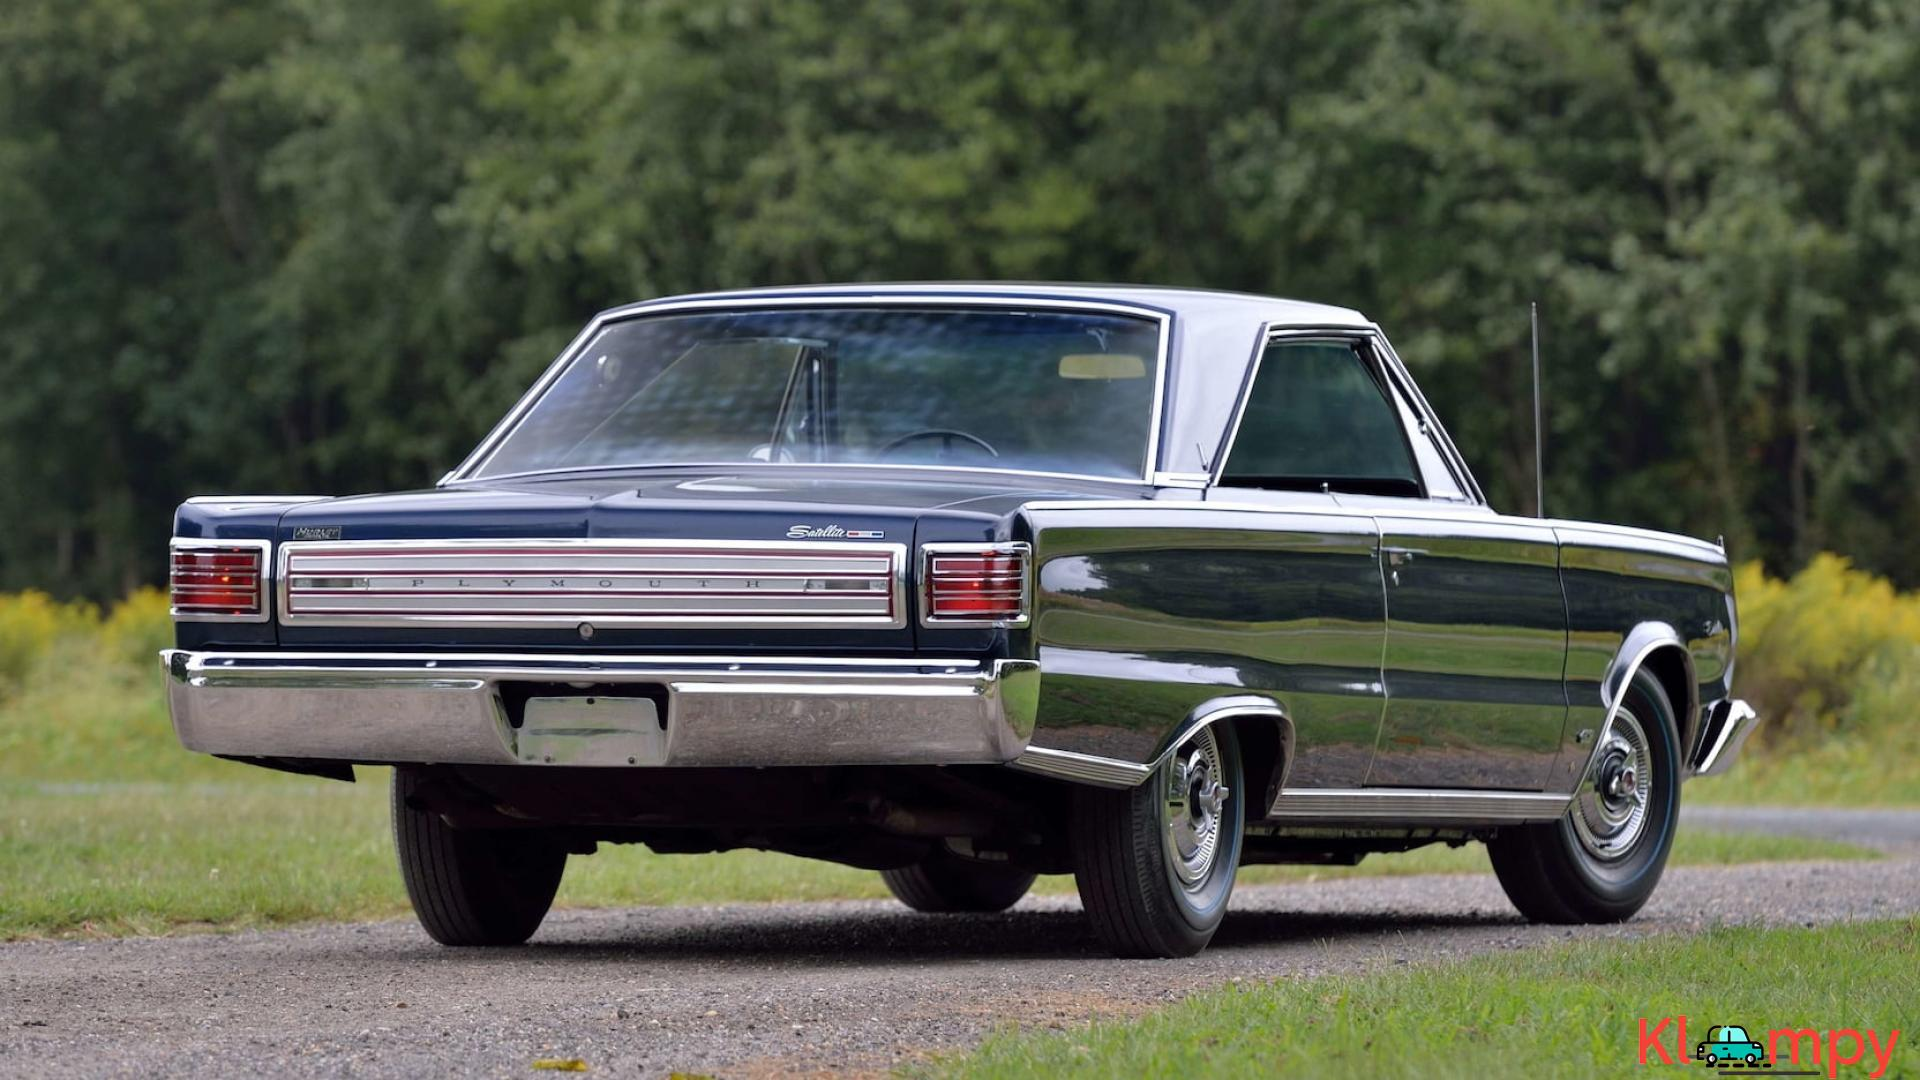 1966 Plymouth Satellite Original 426 CI - 4/18